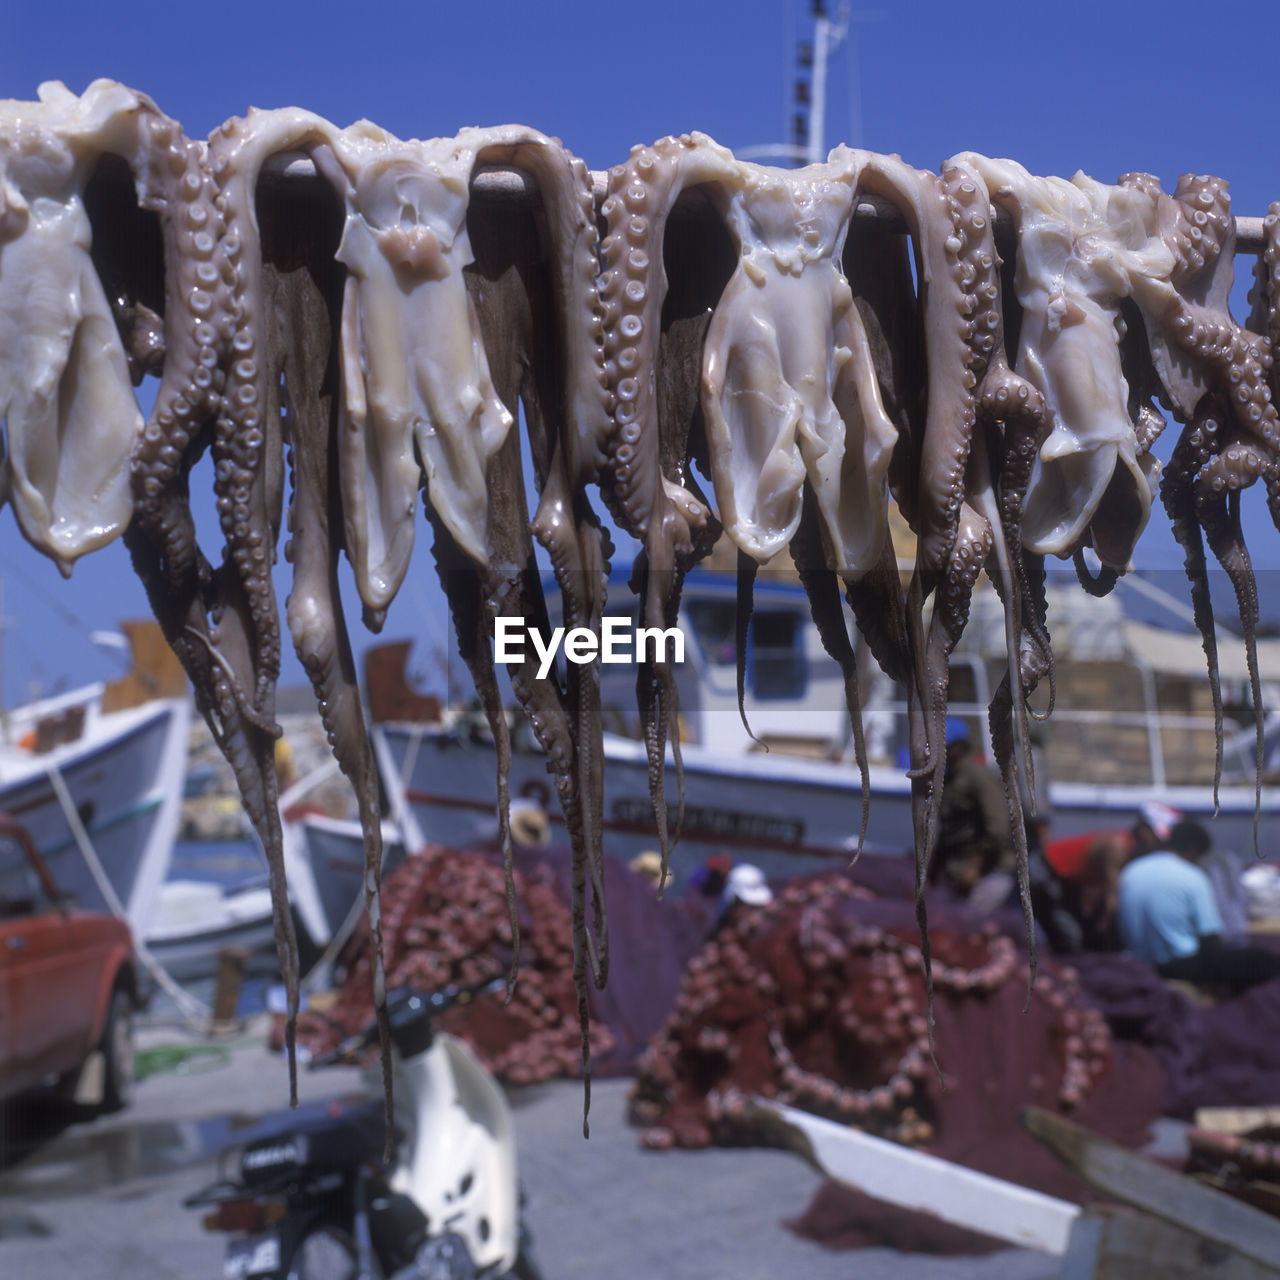 Dead Octopuses Hanging From Rod At Harbor